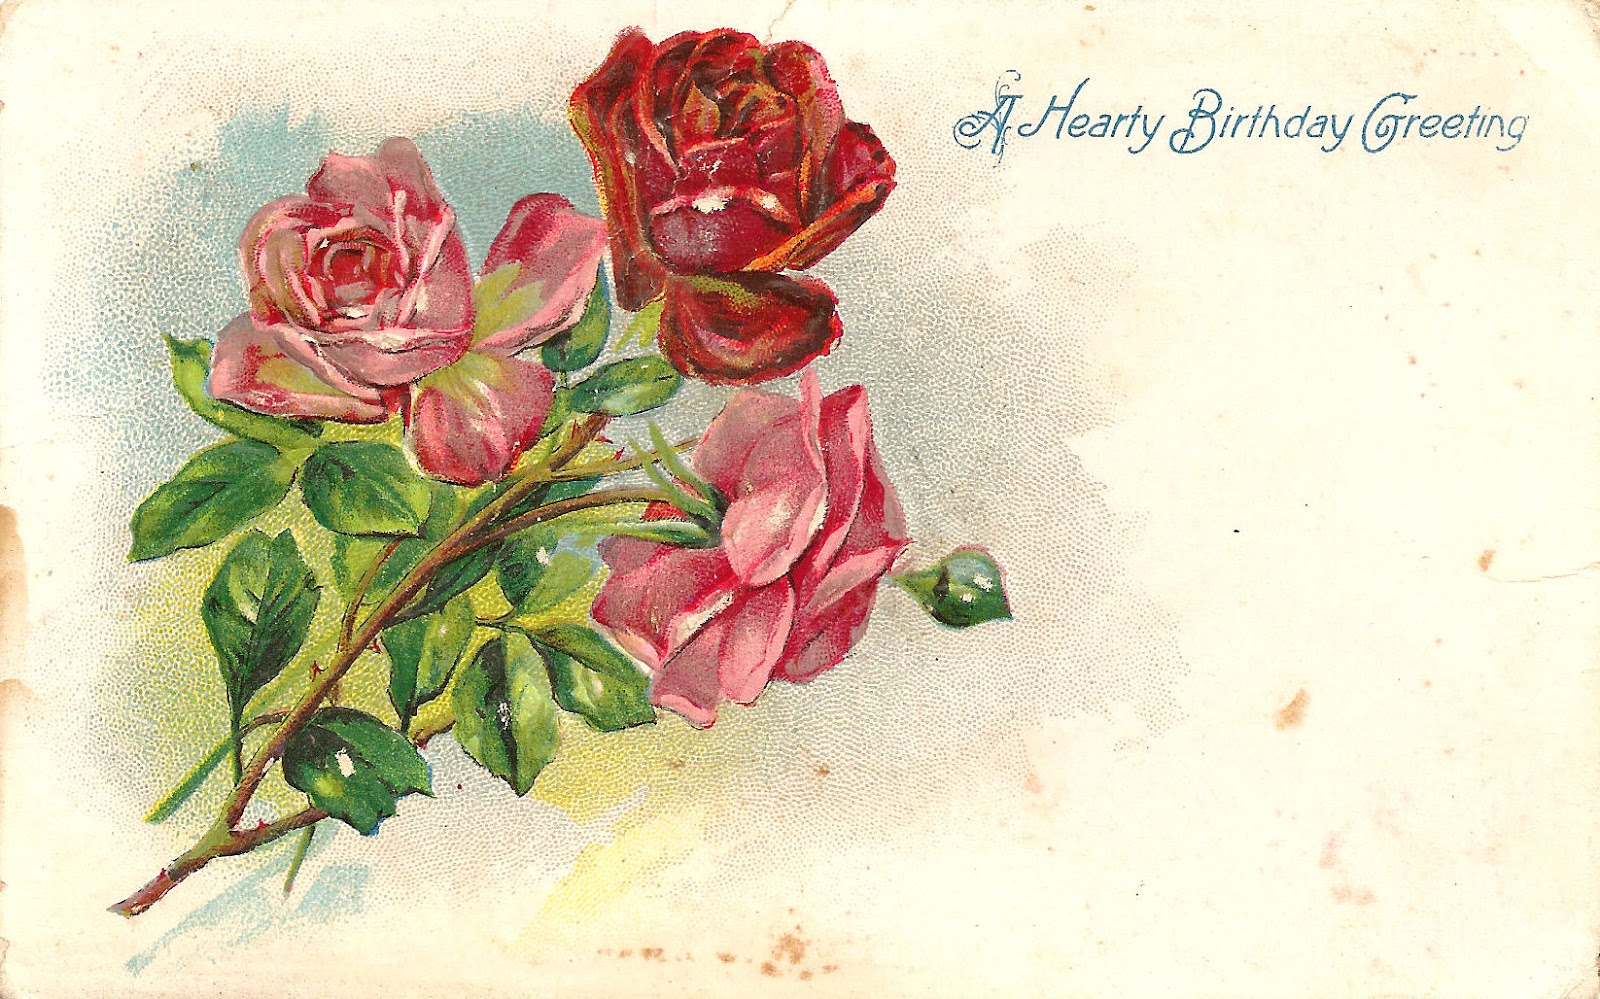 Free Flower Clip Art  3 Red And Pink Rose Graphics On Vintage Birthday